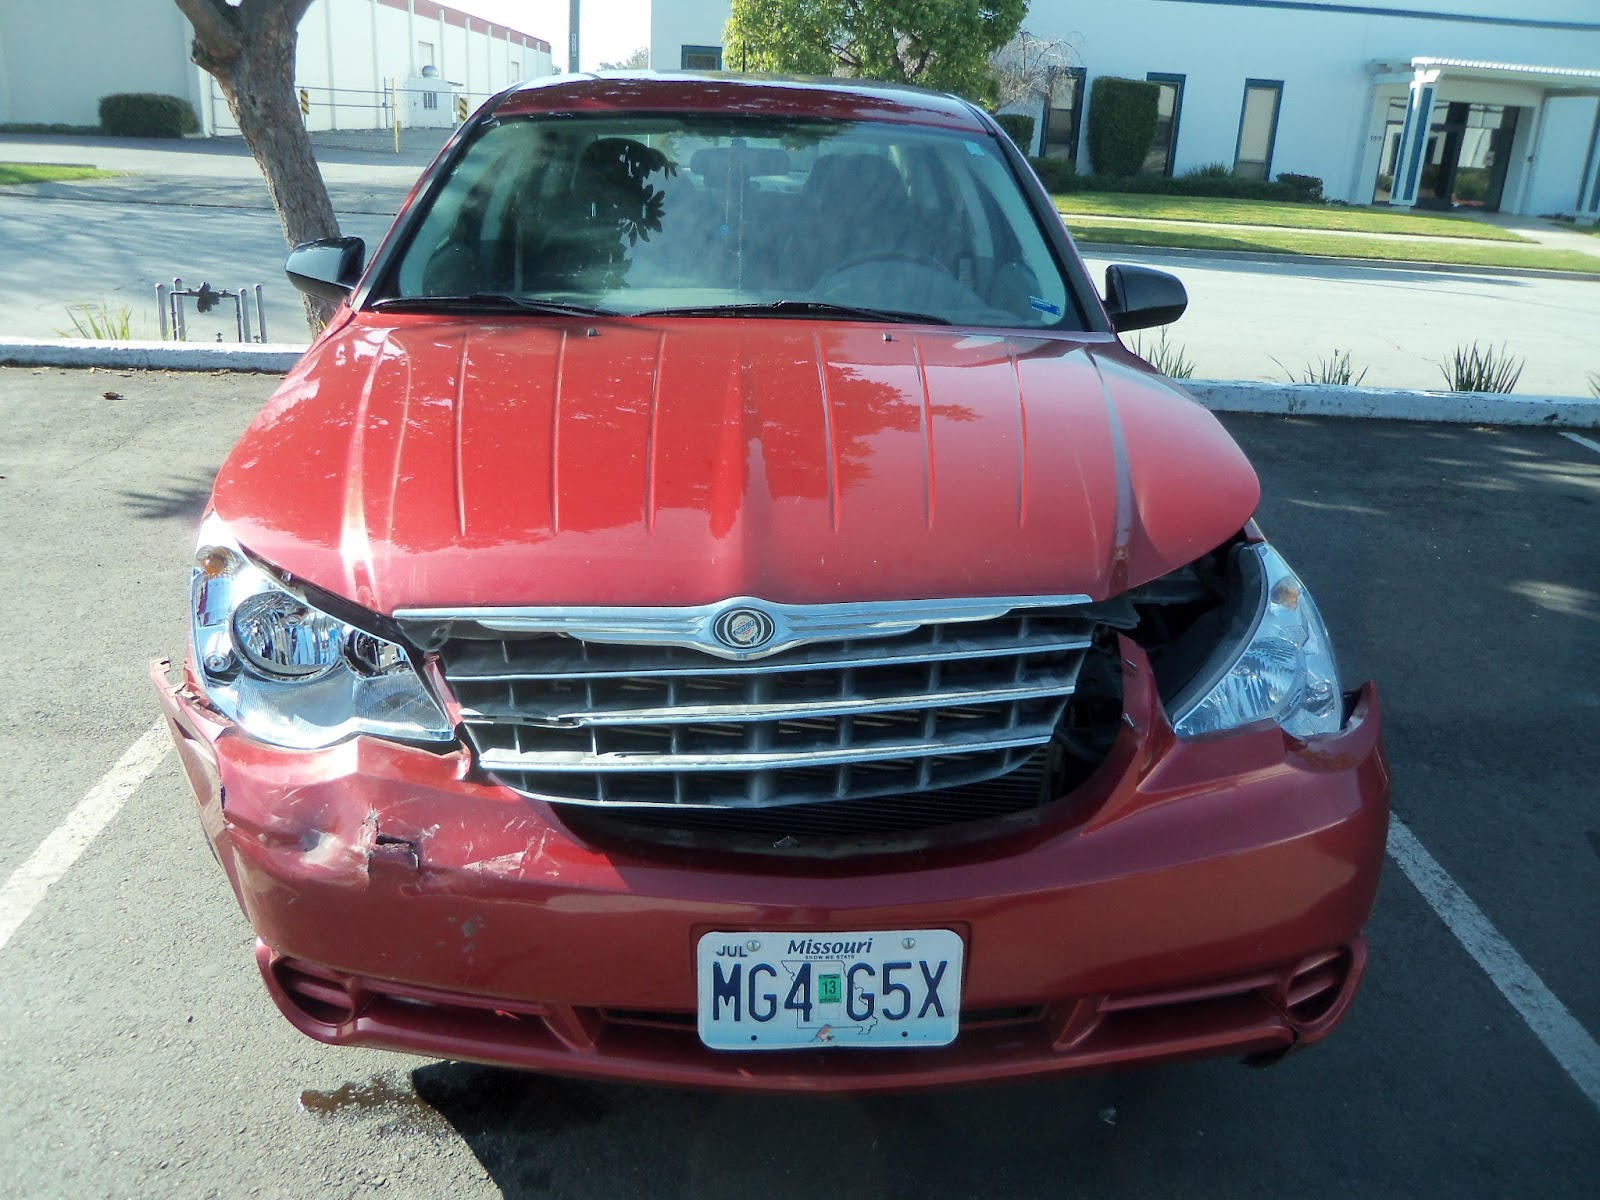 Collision accident damage before repairs at Almost Everything Auto Body